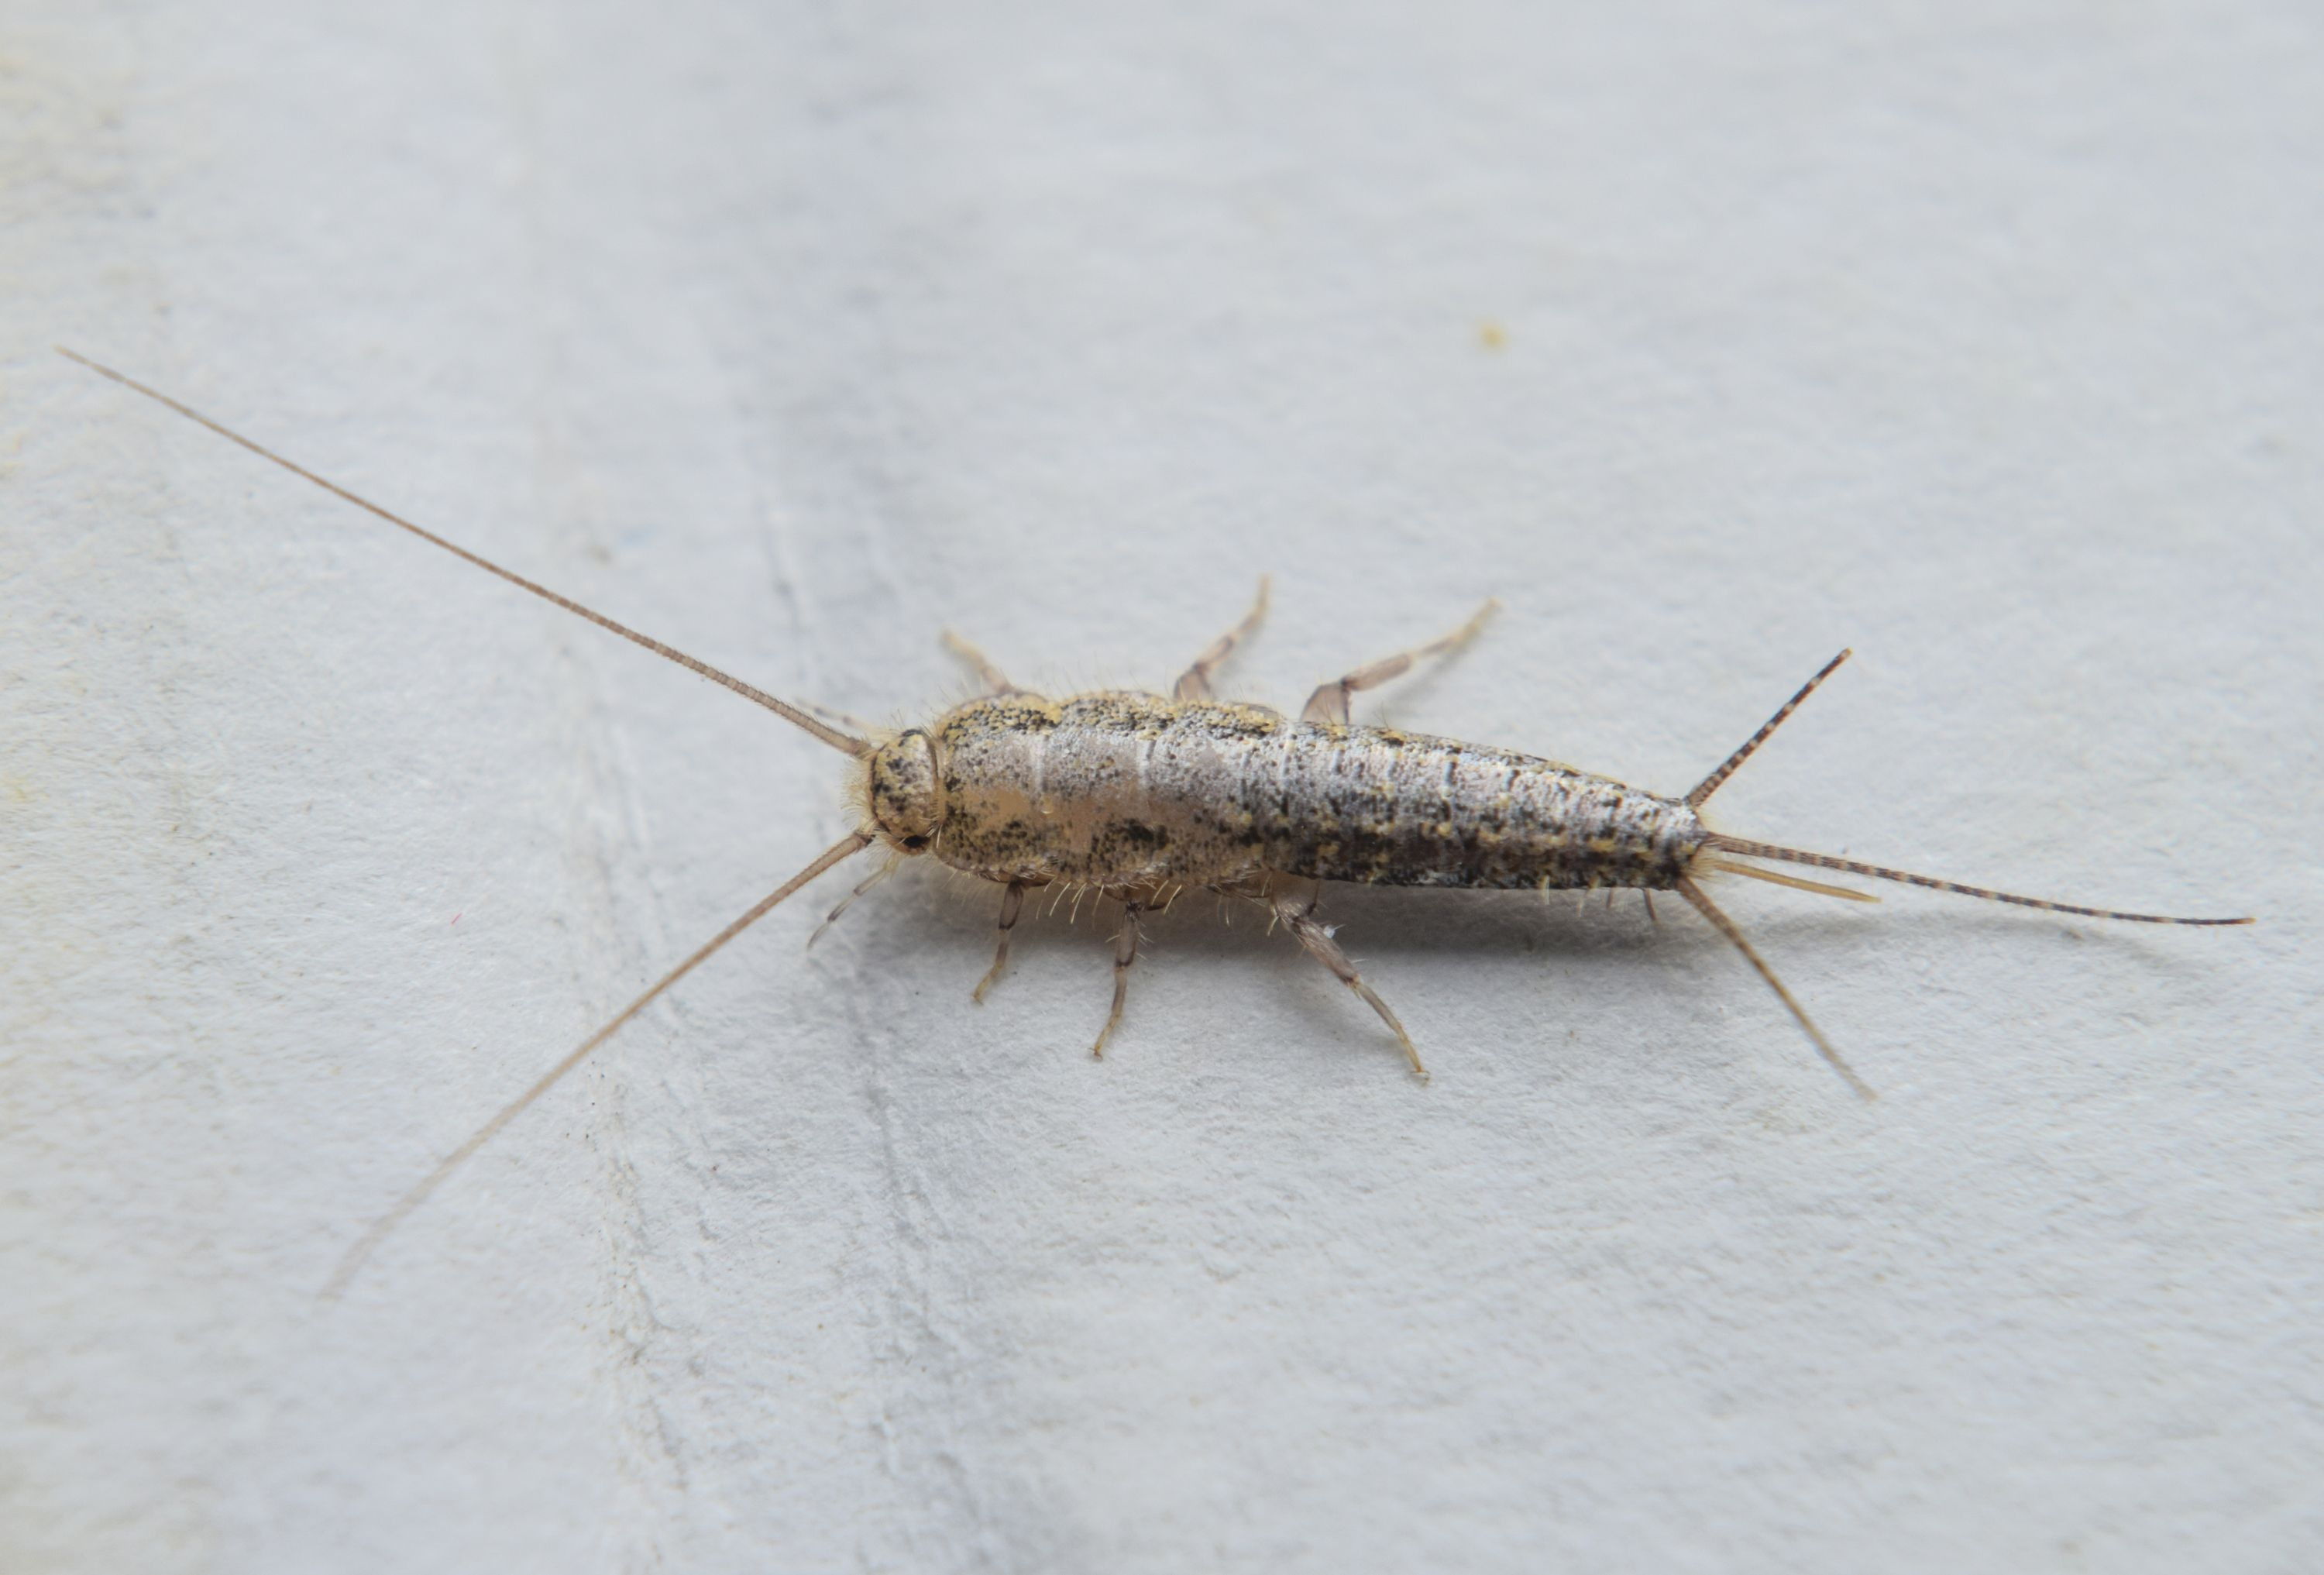 The silverfish interferes with life. Methods of insect control 71